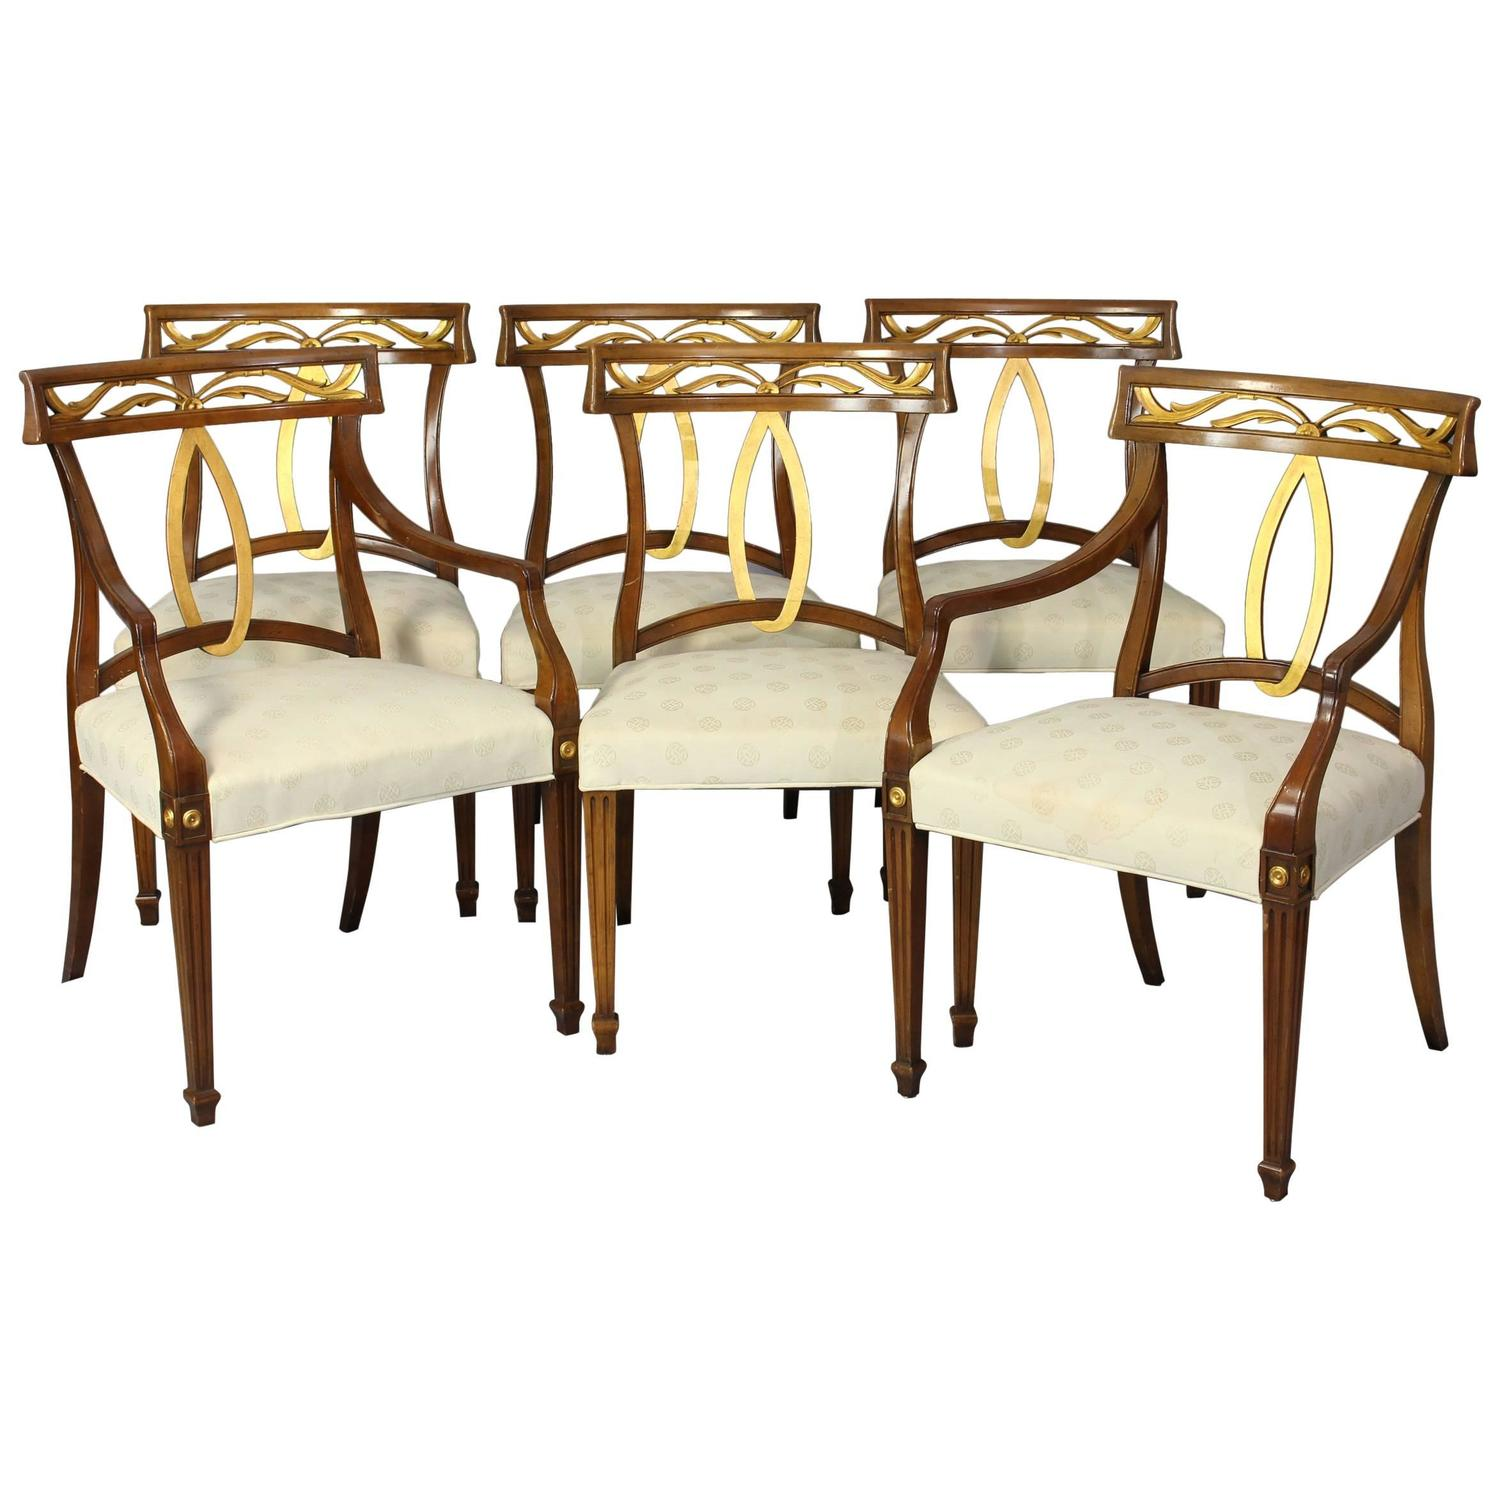 Italian Dining Chairs Set Of Six Midcentury Italian Neoclassical Style Dining